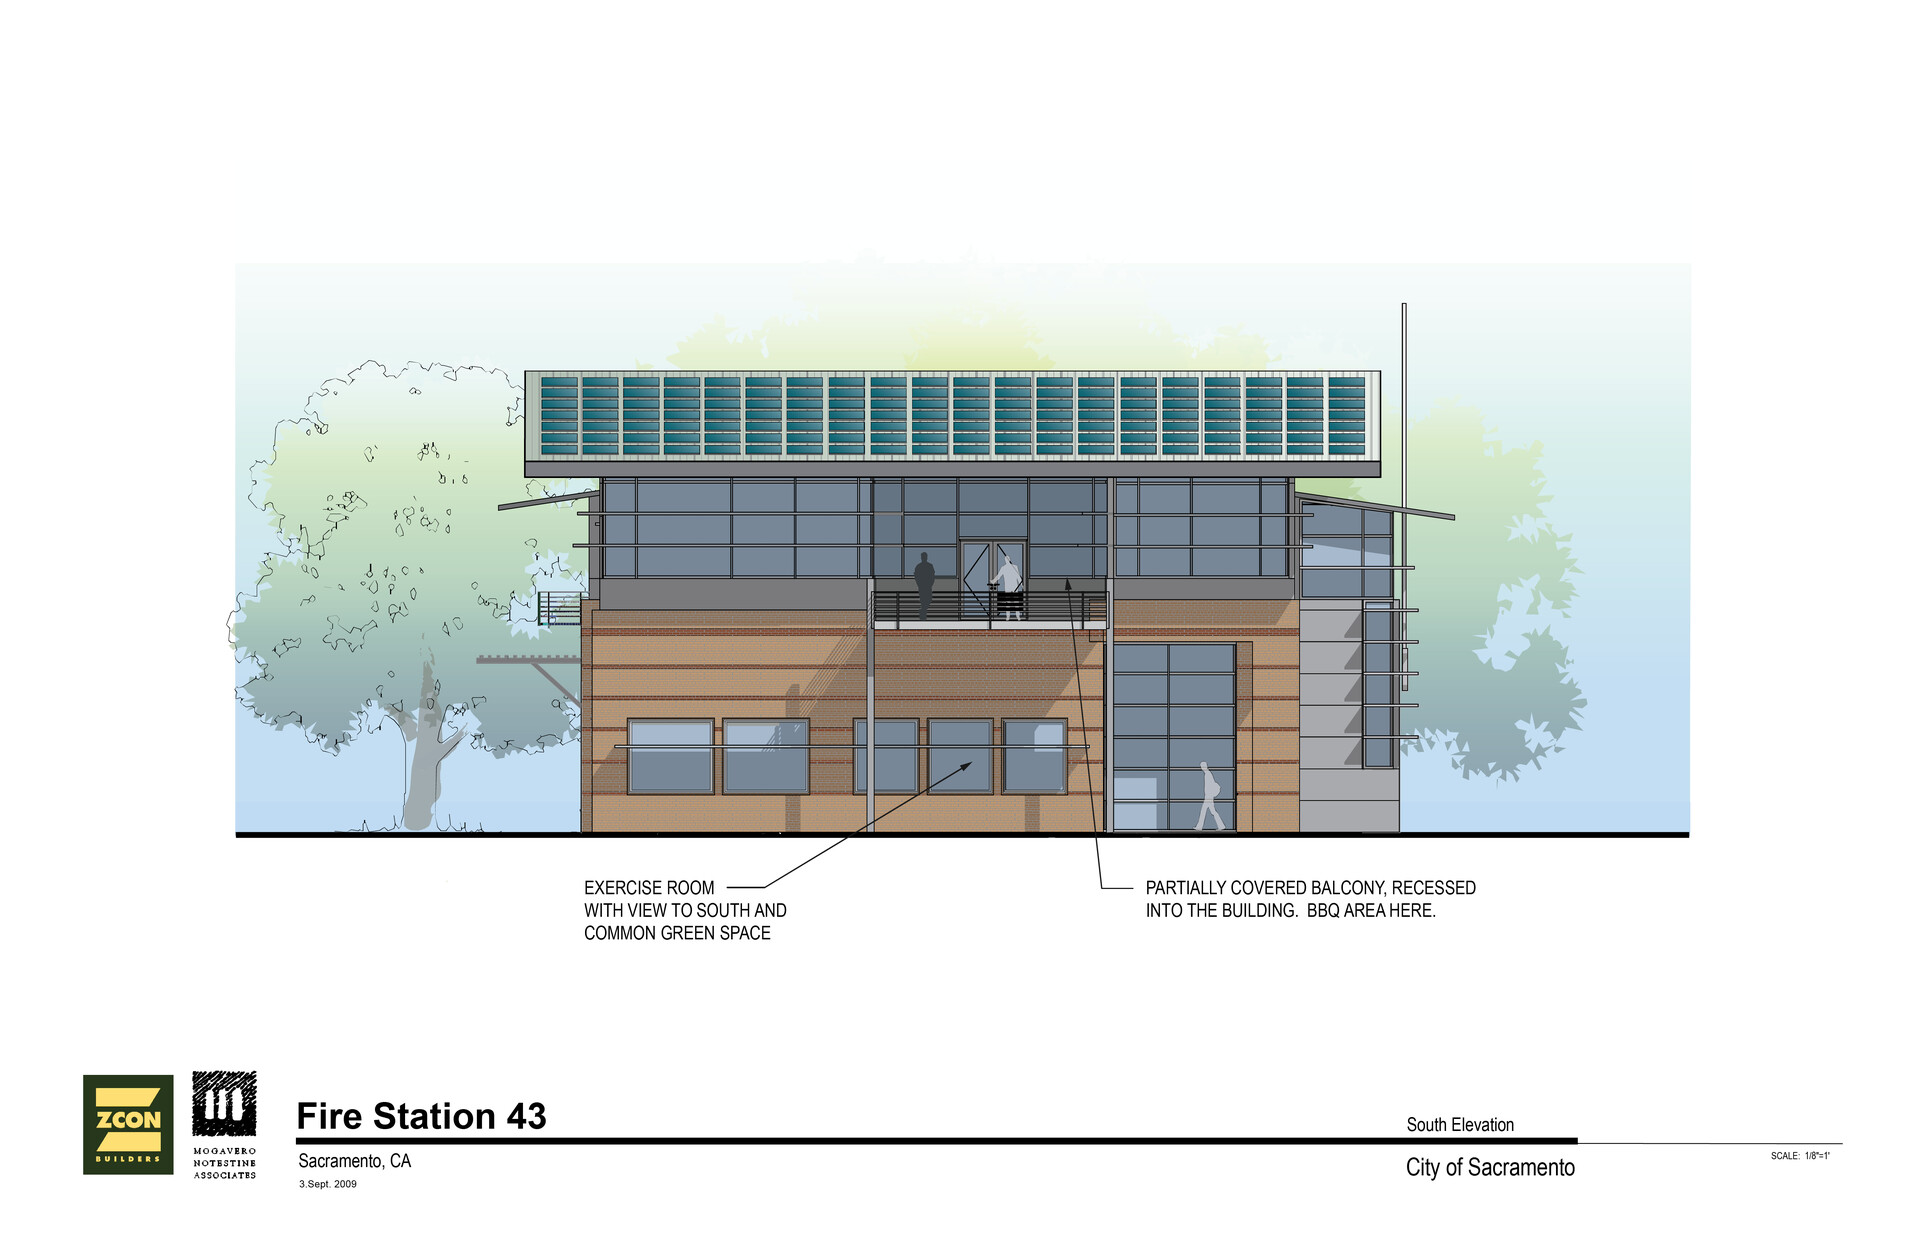 Gerard falla firestation 4311 south elevation 01